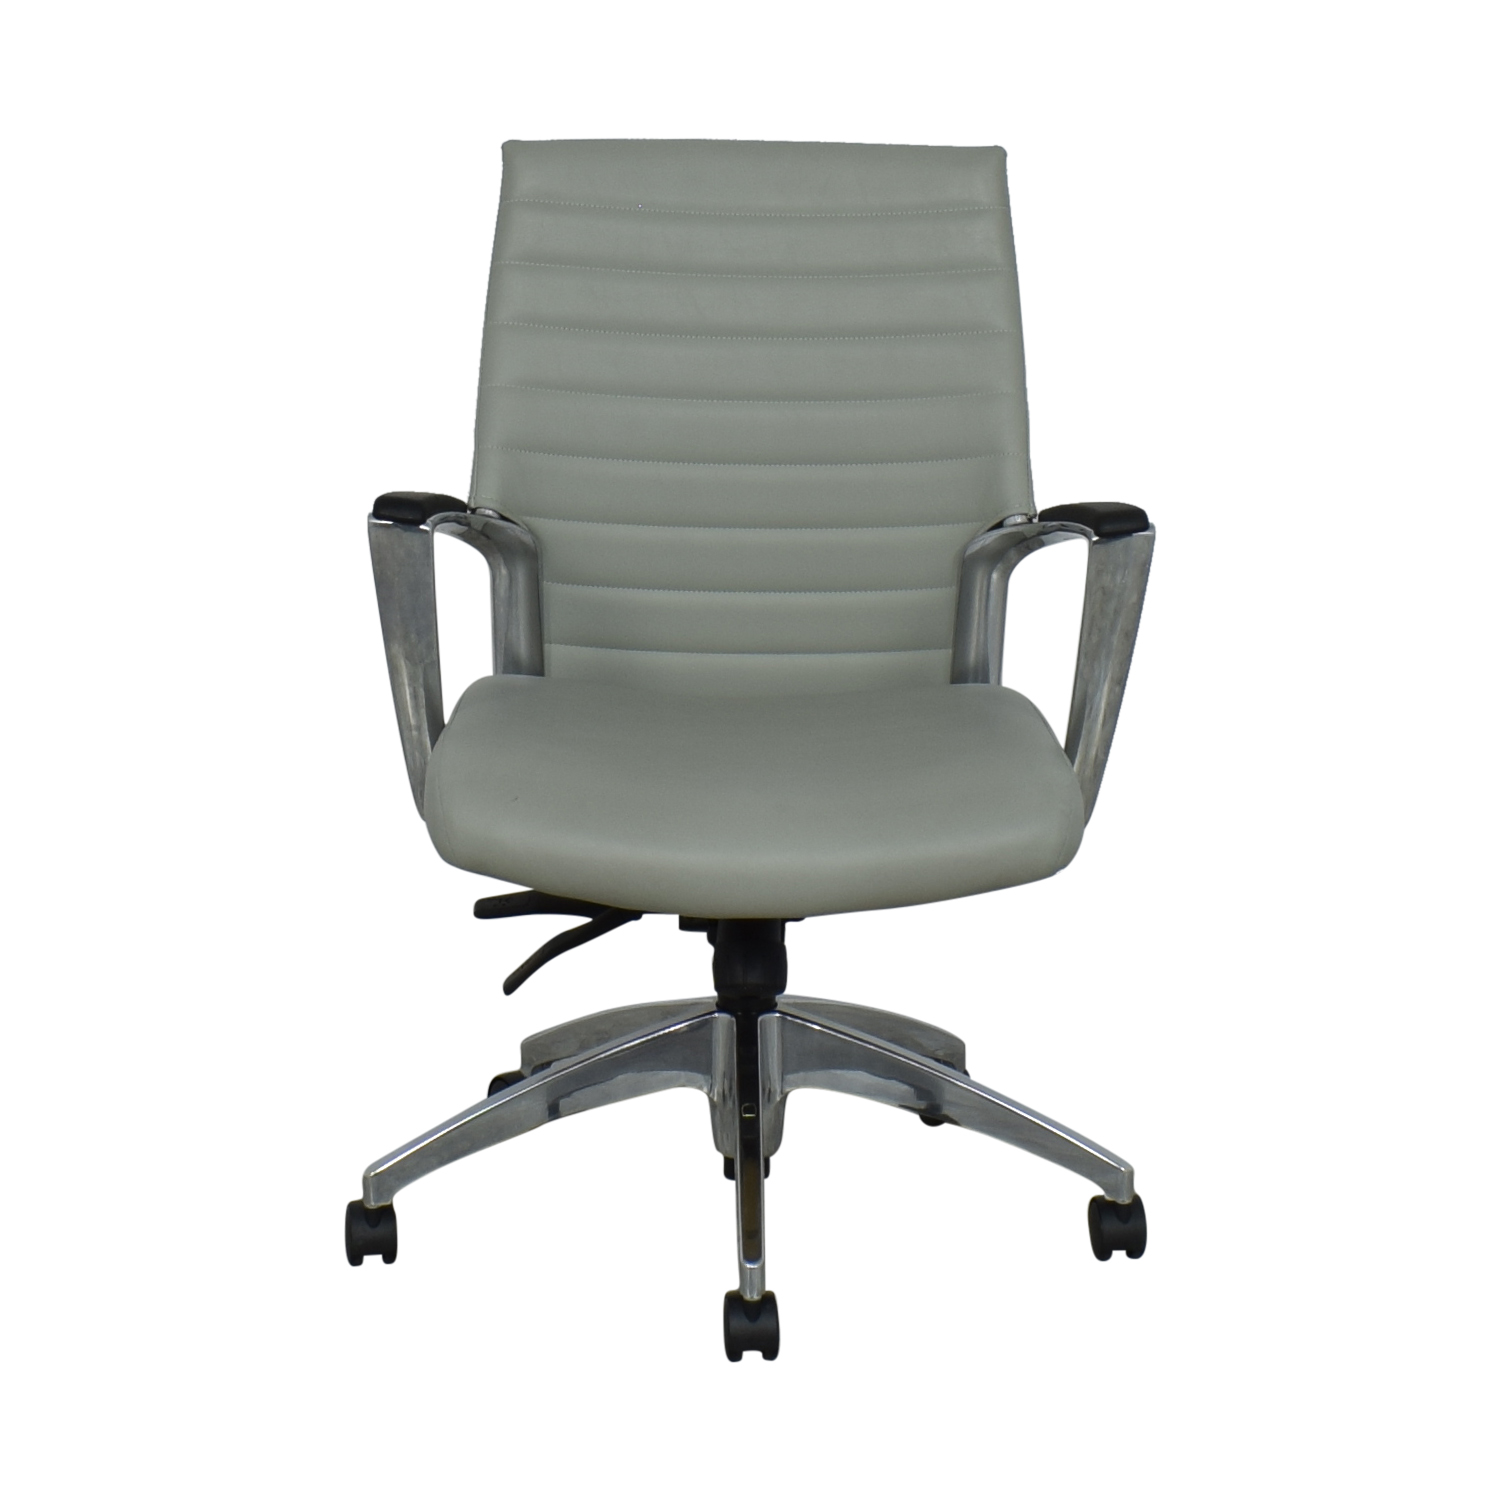 Global Global Accord Medium Back Tilter Chair Chairs